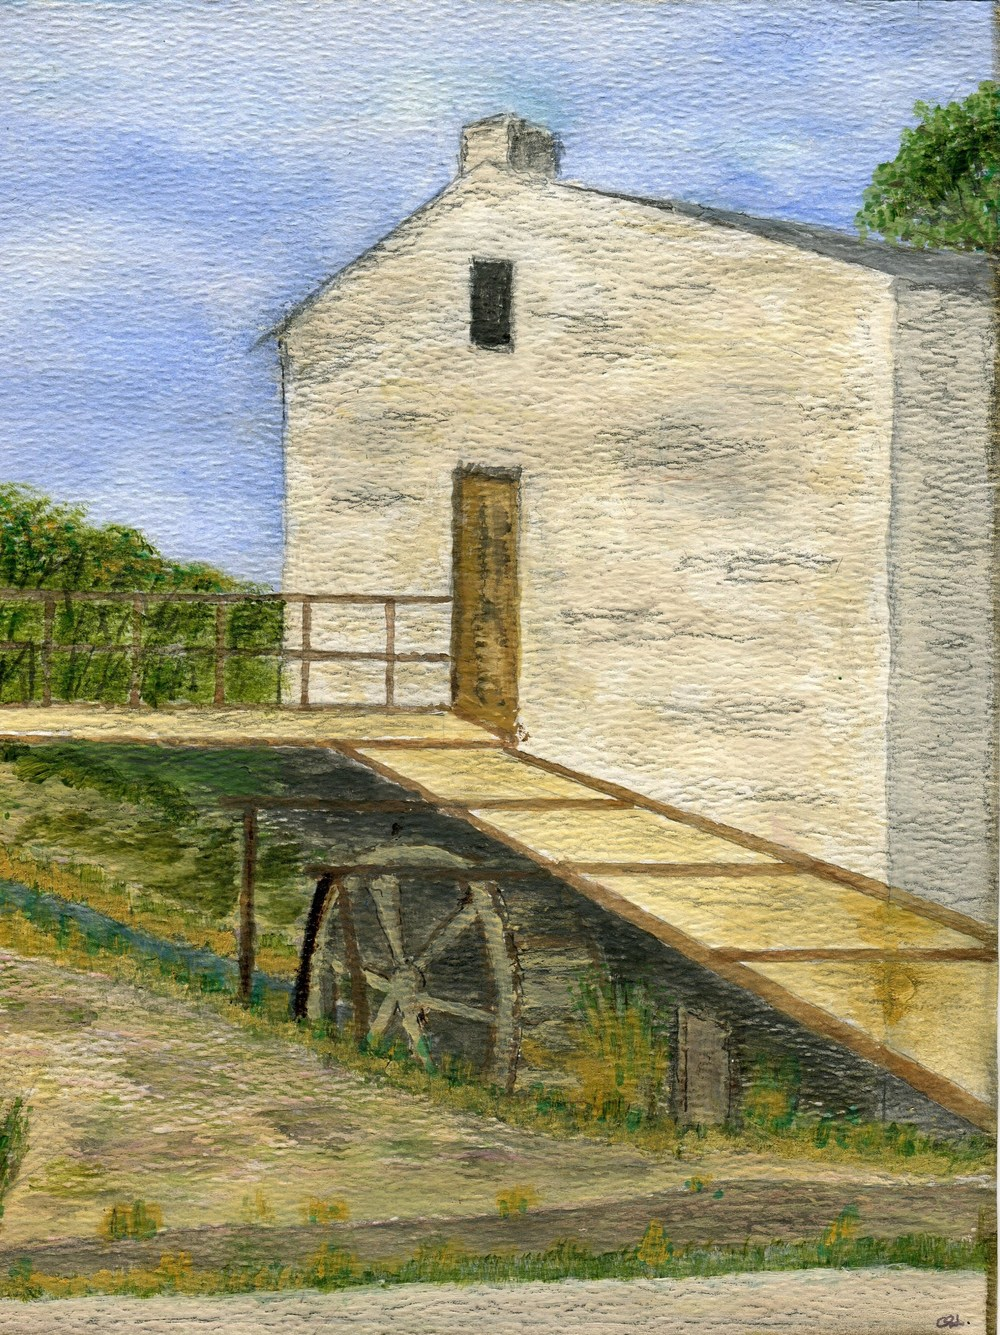 10b Lake, Chris-The Old Prince Albert Watermill,Water colour on canvass.jpg